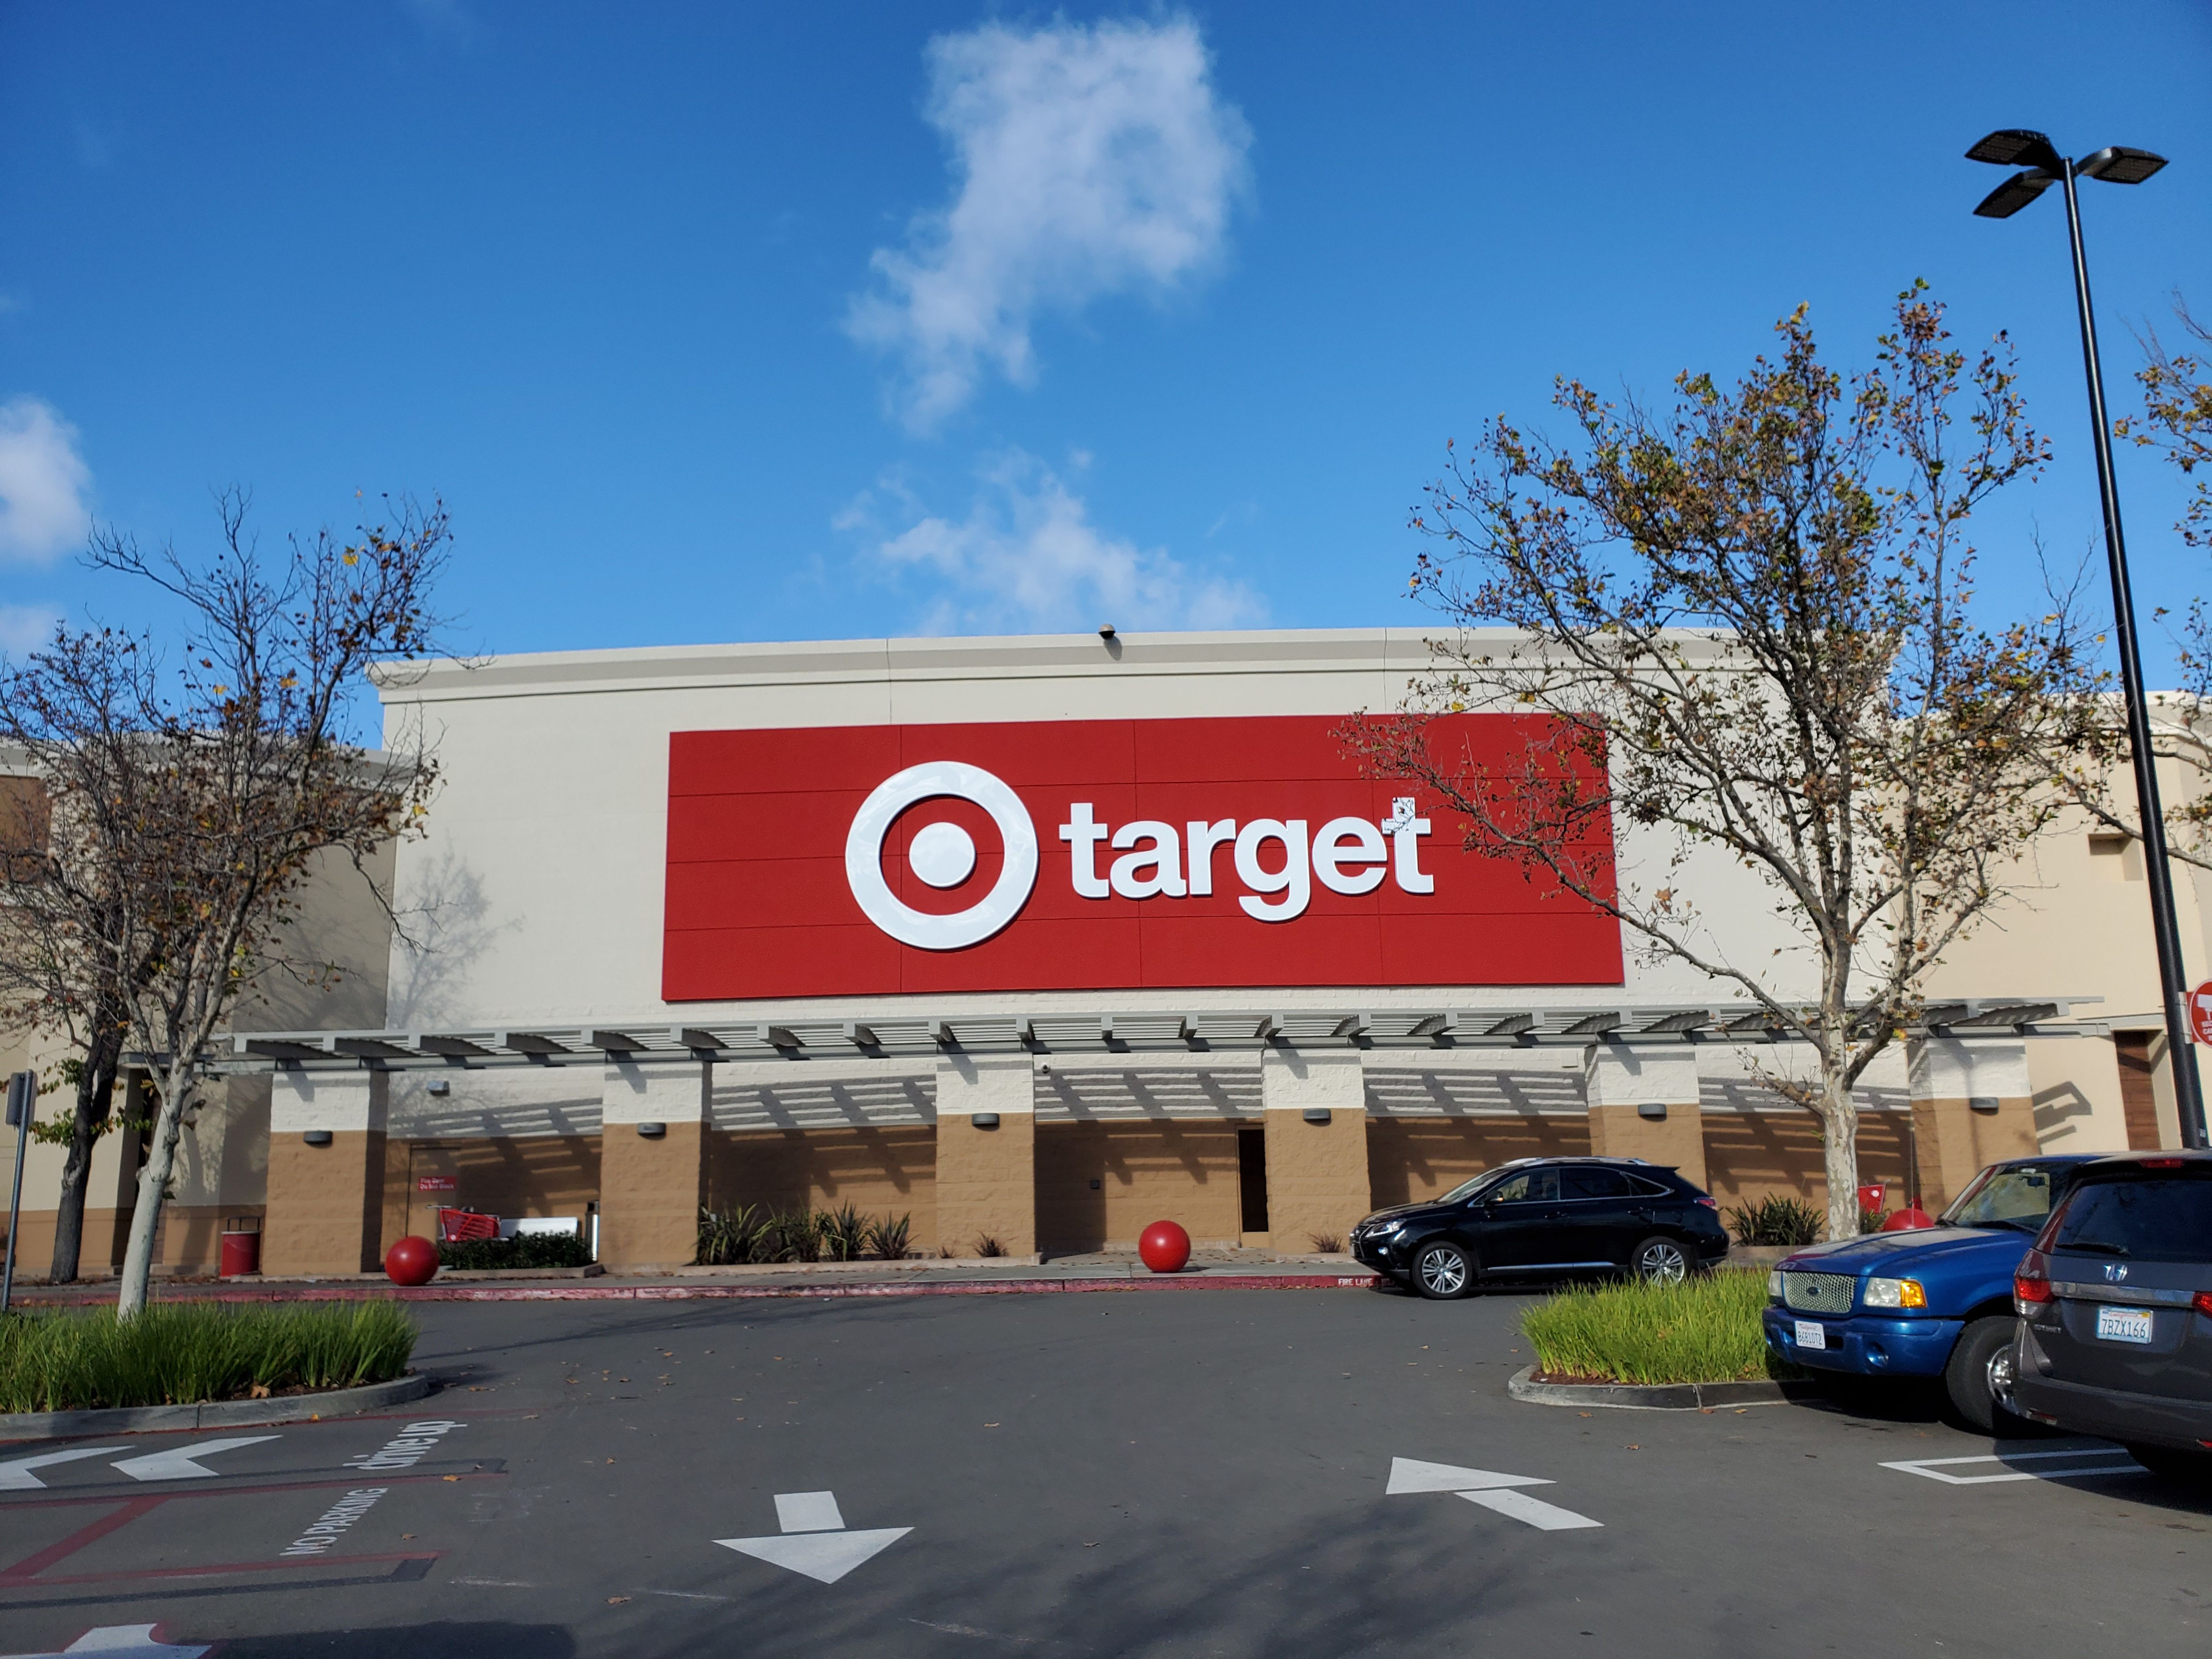 Facade with logo at Target retail store on a sunny day in San Ramon on December 15, 2019 | Photo: Getty Images